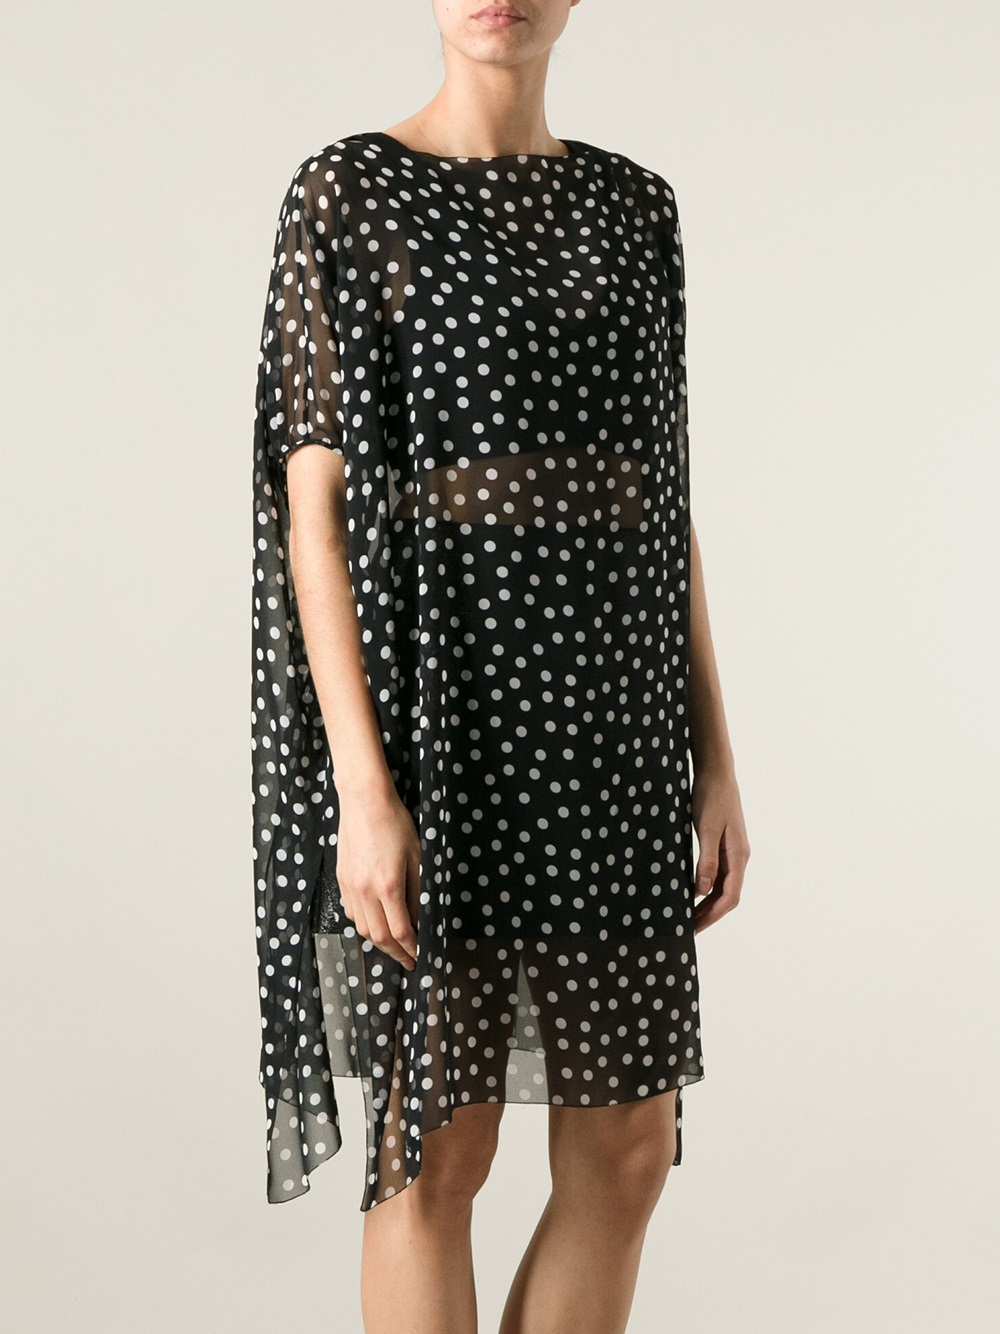 Lyst Dolce Amp Gabbana Sheer Polka Dot Dress In Black